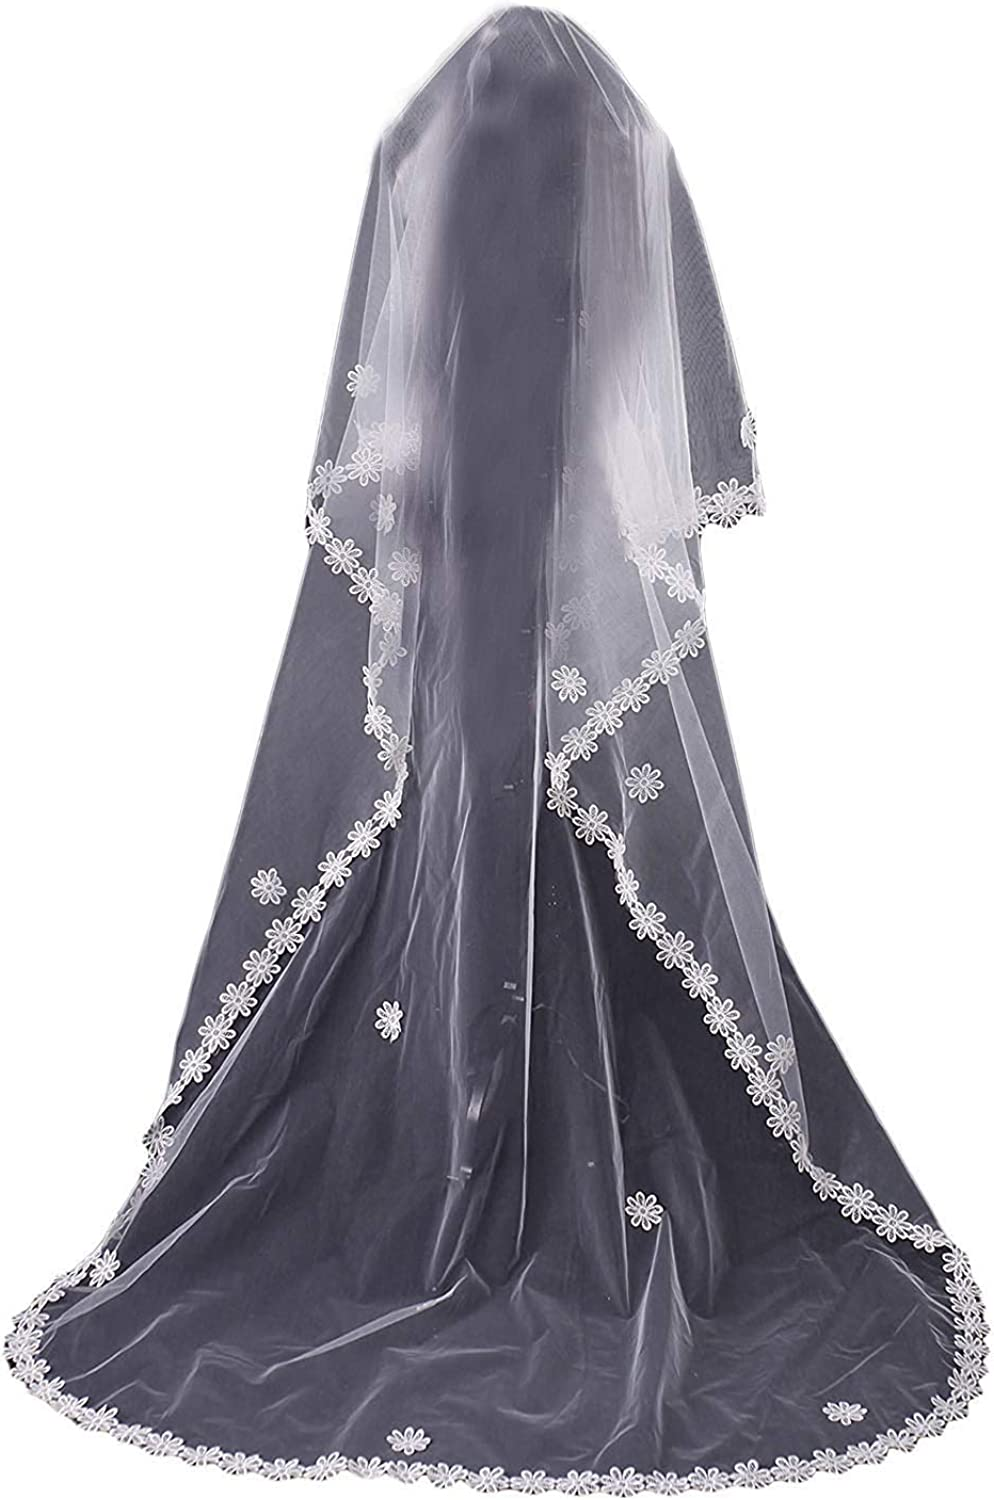 Fenghauvip 2 Tier bluesher Wedding Veil Lace Edge Cathedral Length Veil for Brides